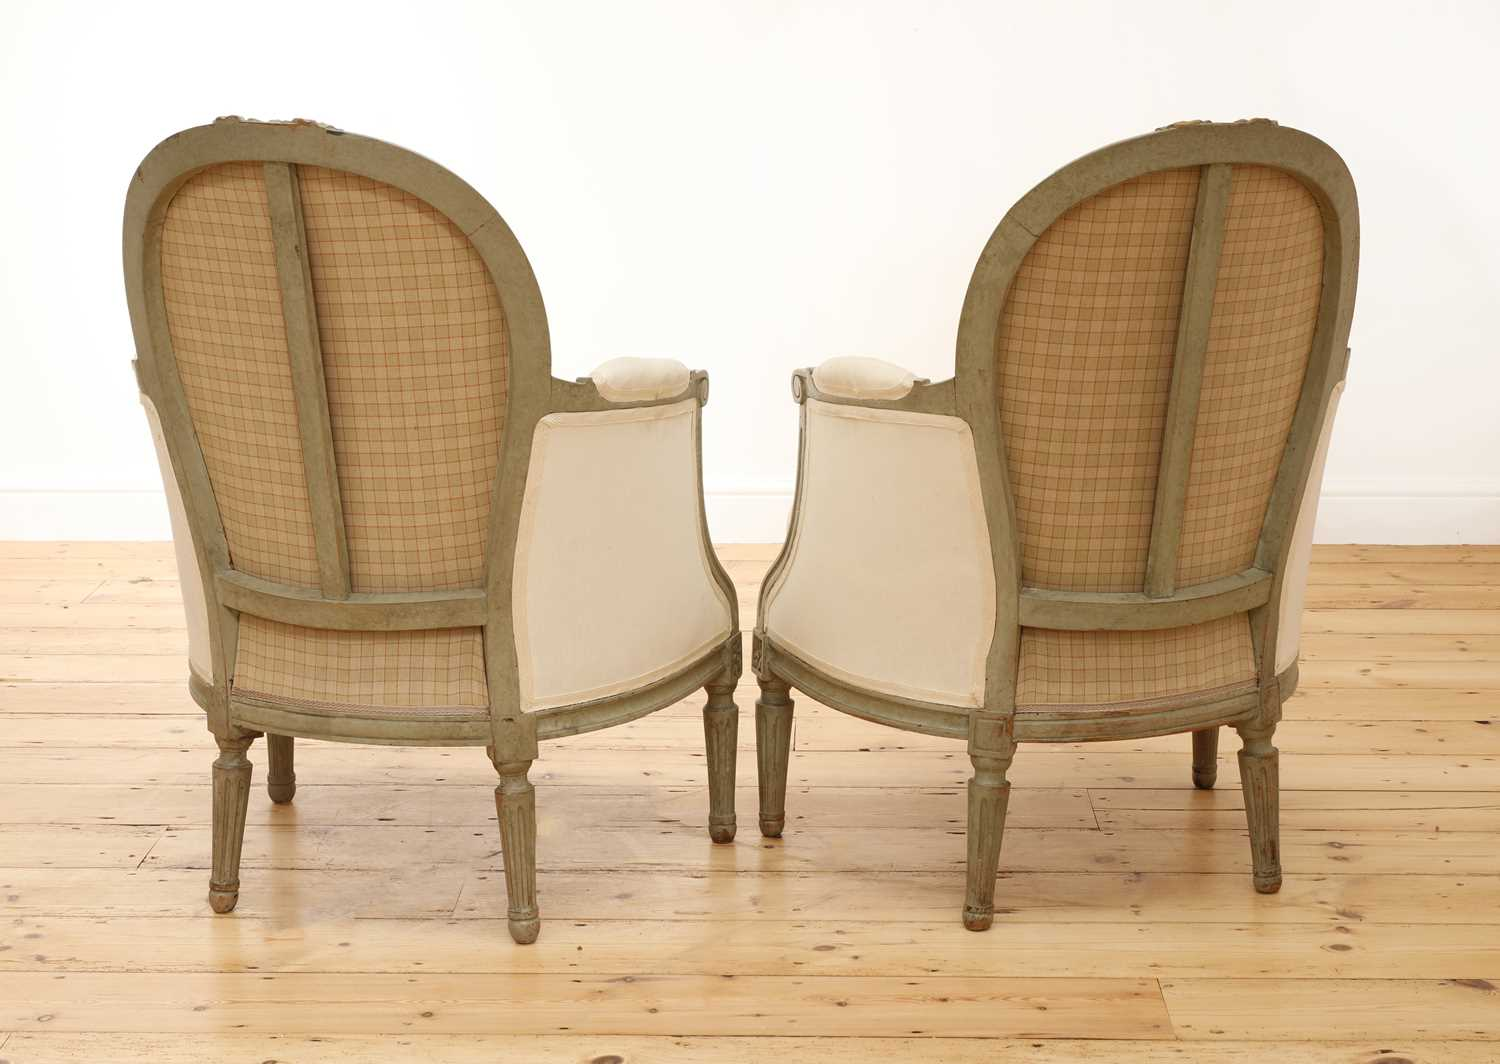 A pair of French Louis XVI-style painted fauteuils, - Image 4 of 5